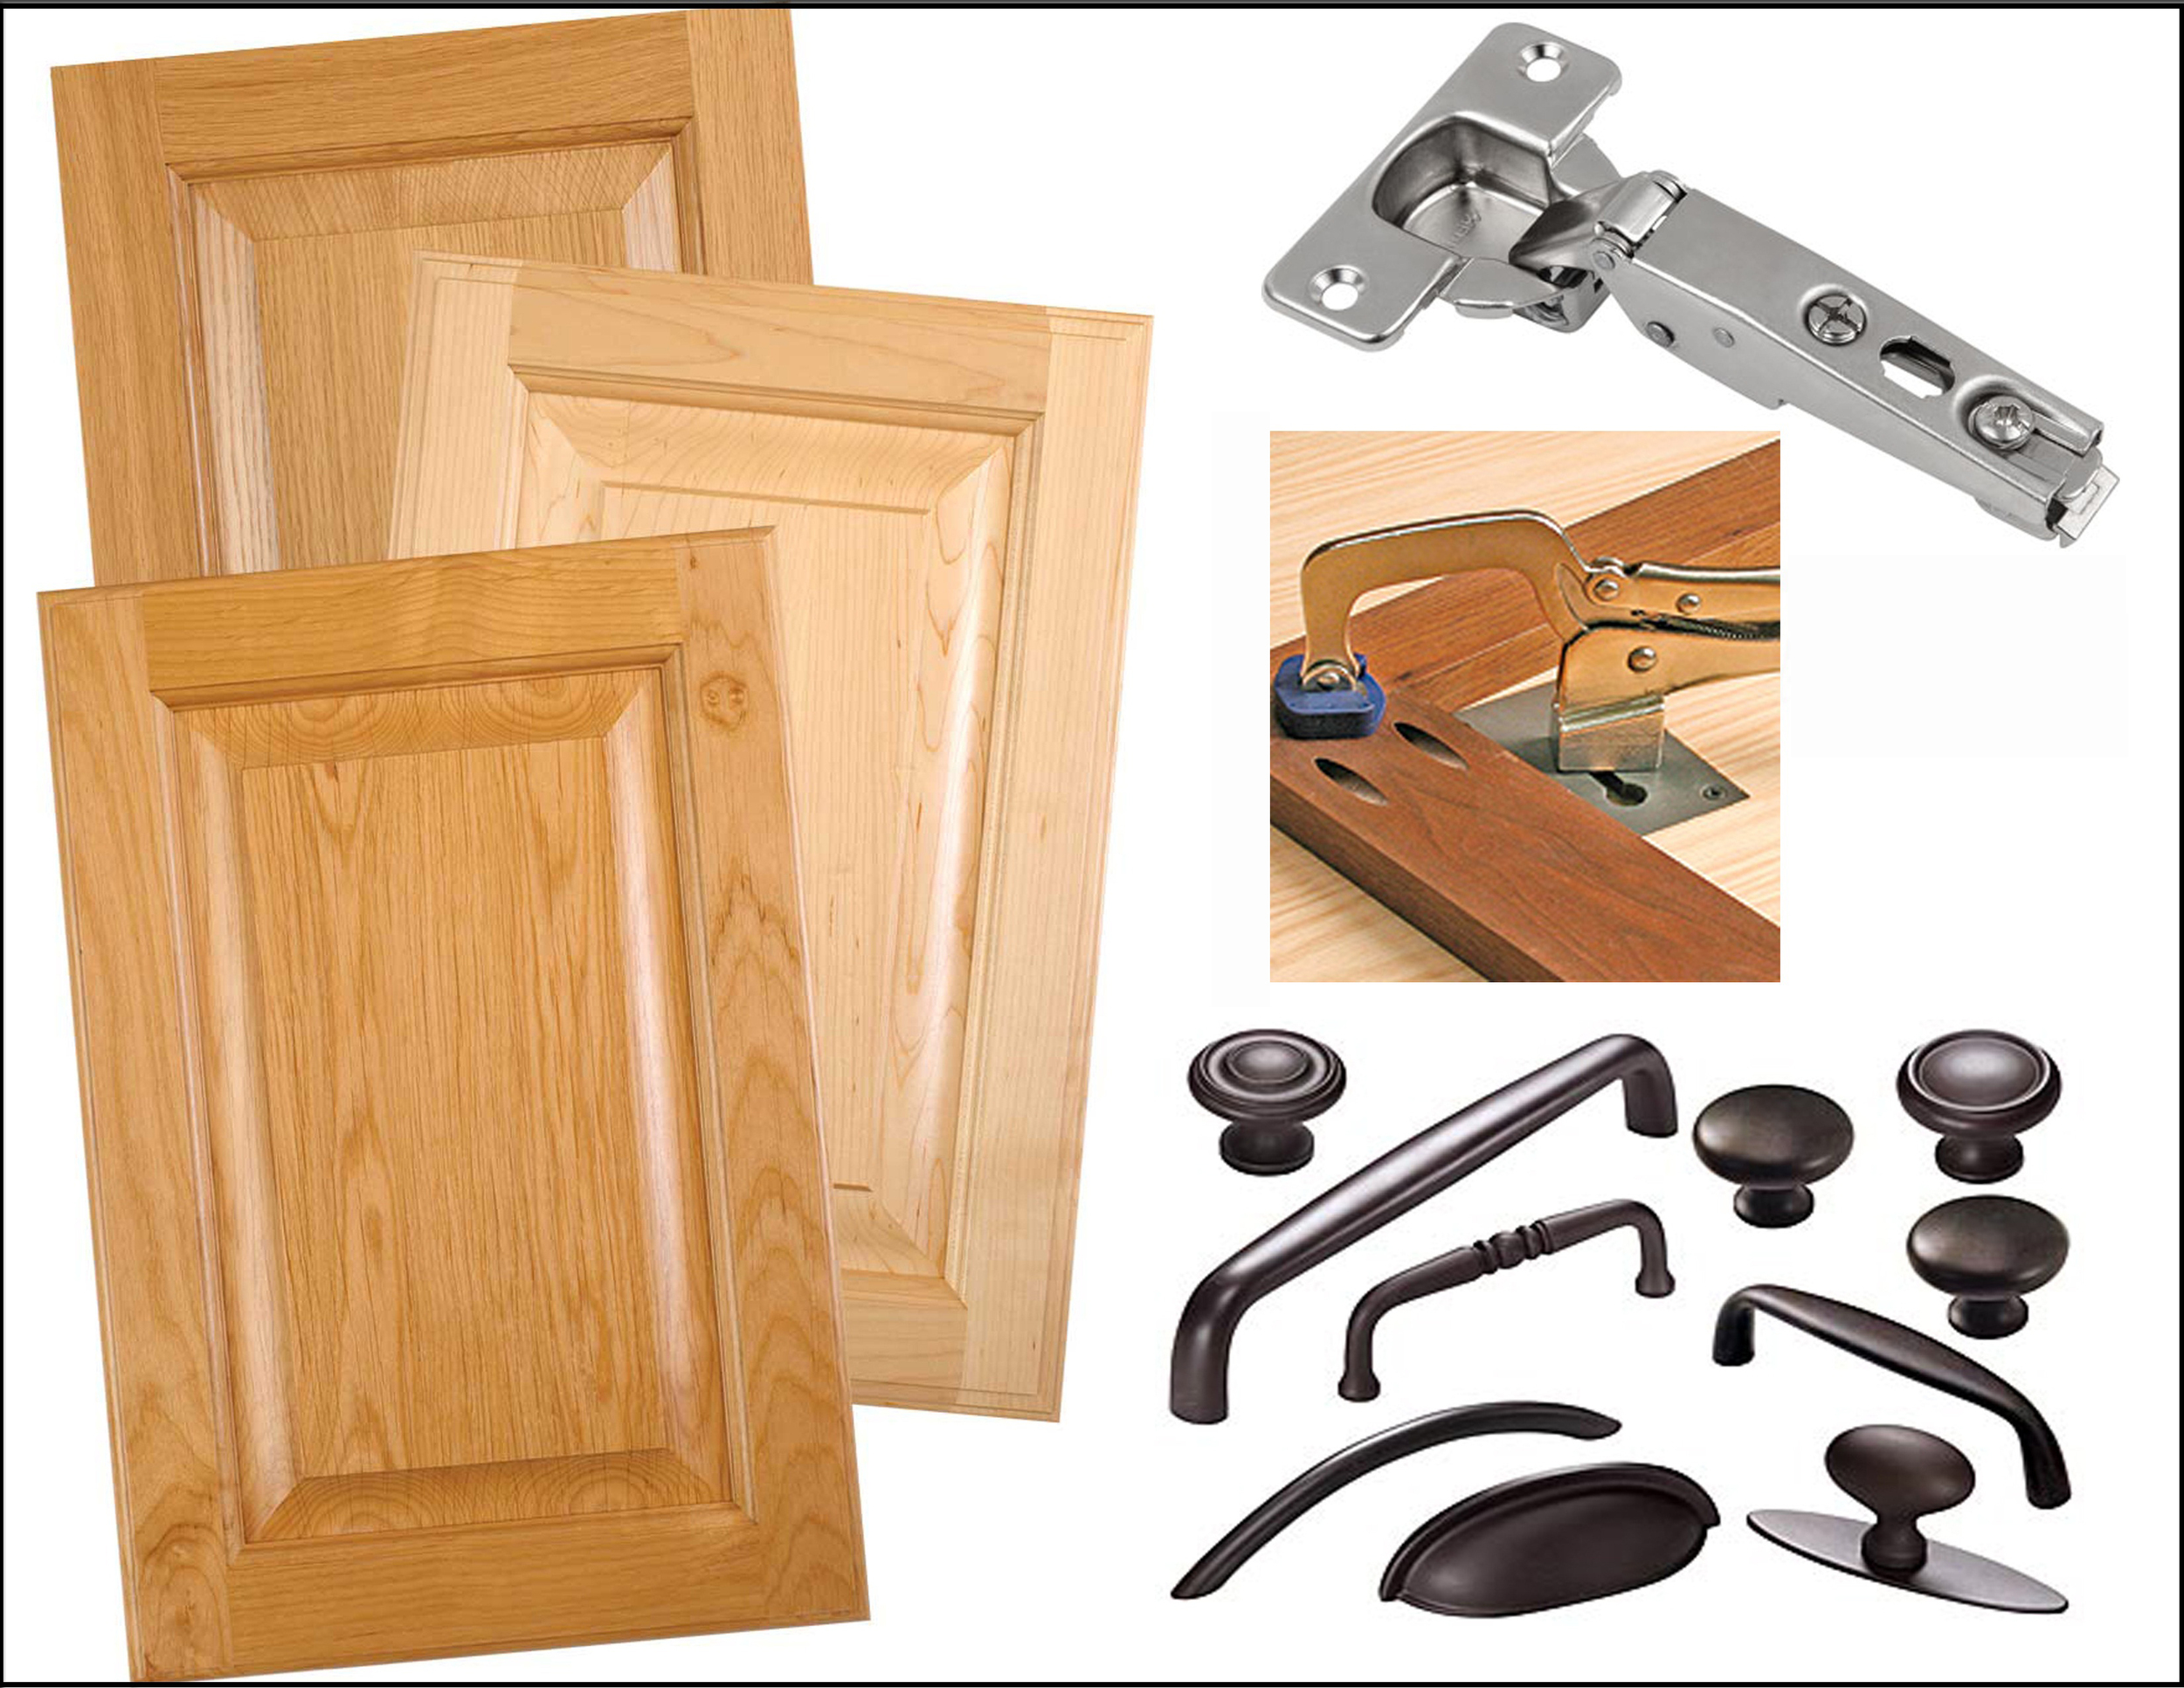 For Cabinetry Shops, Wood Workers, & Individuals interested in purchasing Doors, Drawer Fronts, Drawers, Face Frames, Hinges, Pulls, Knobs, & other Cabinet Components.